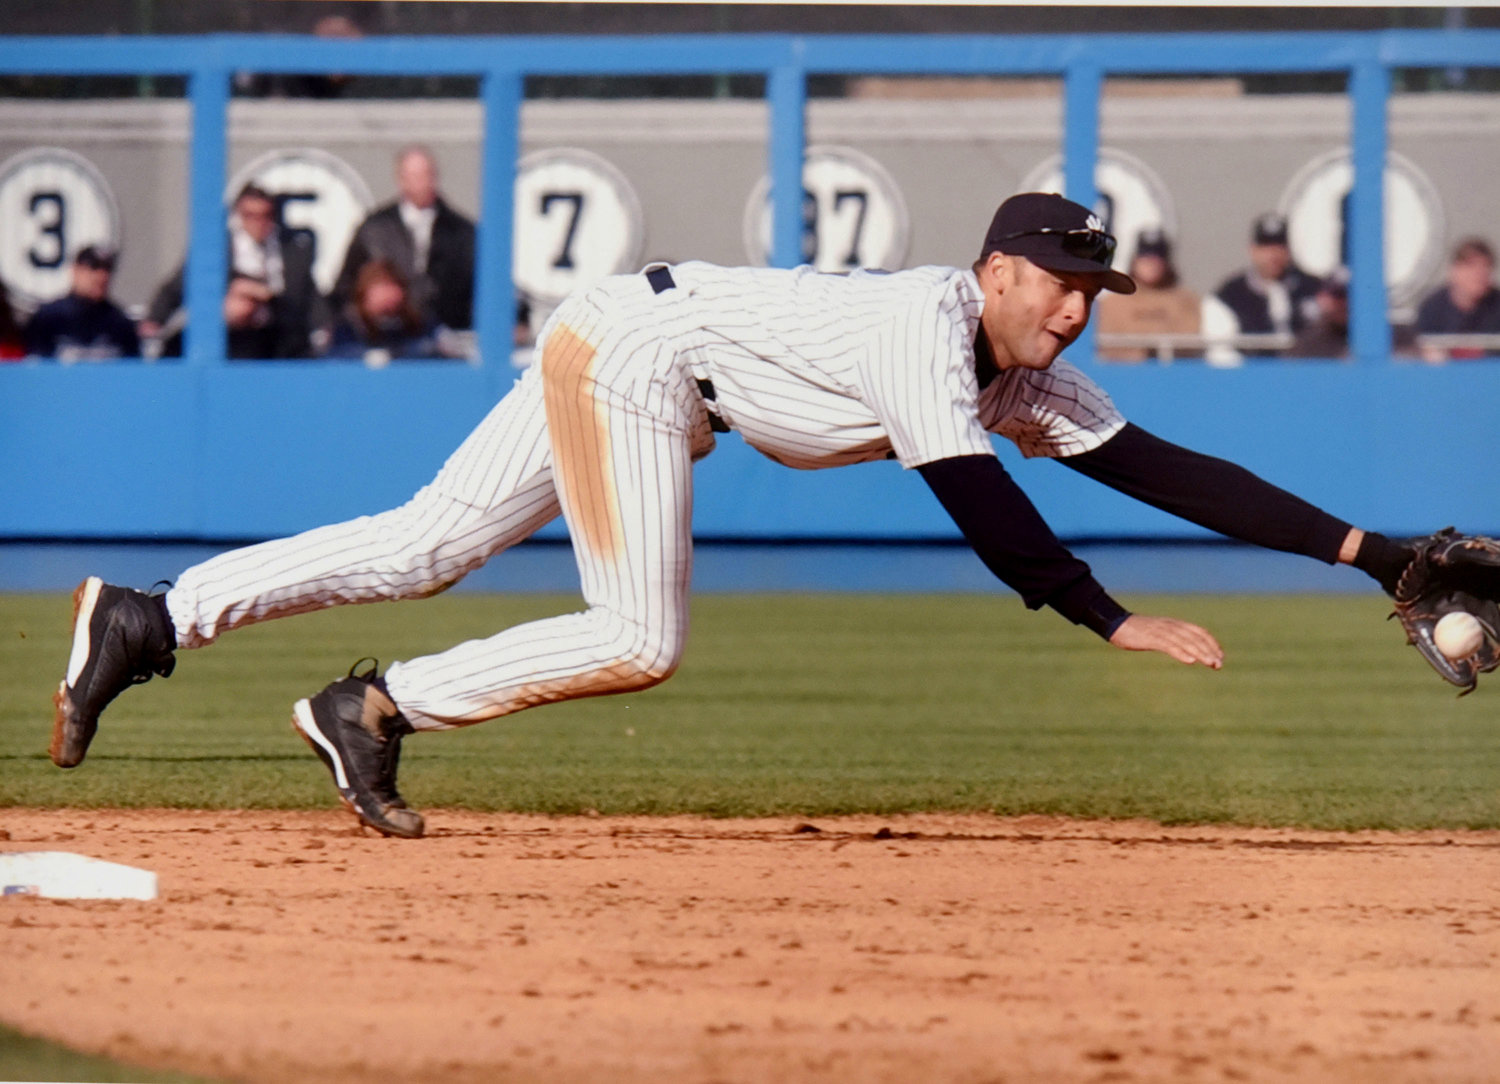 Shortstop Derek Jeter, shown diving for a ground ball, will be the second New York Yankee in as many years inducted in the Baseball Hall of Fame in Cooperstown July 26. Relief pitcher Mariano Rivera was inducted last year.